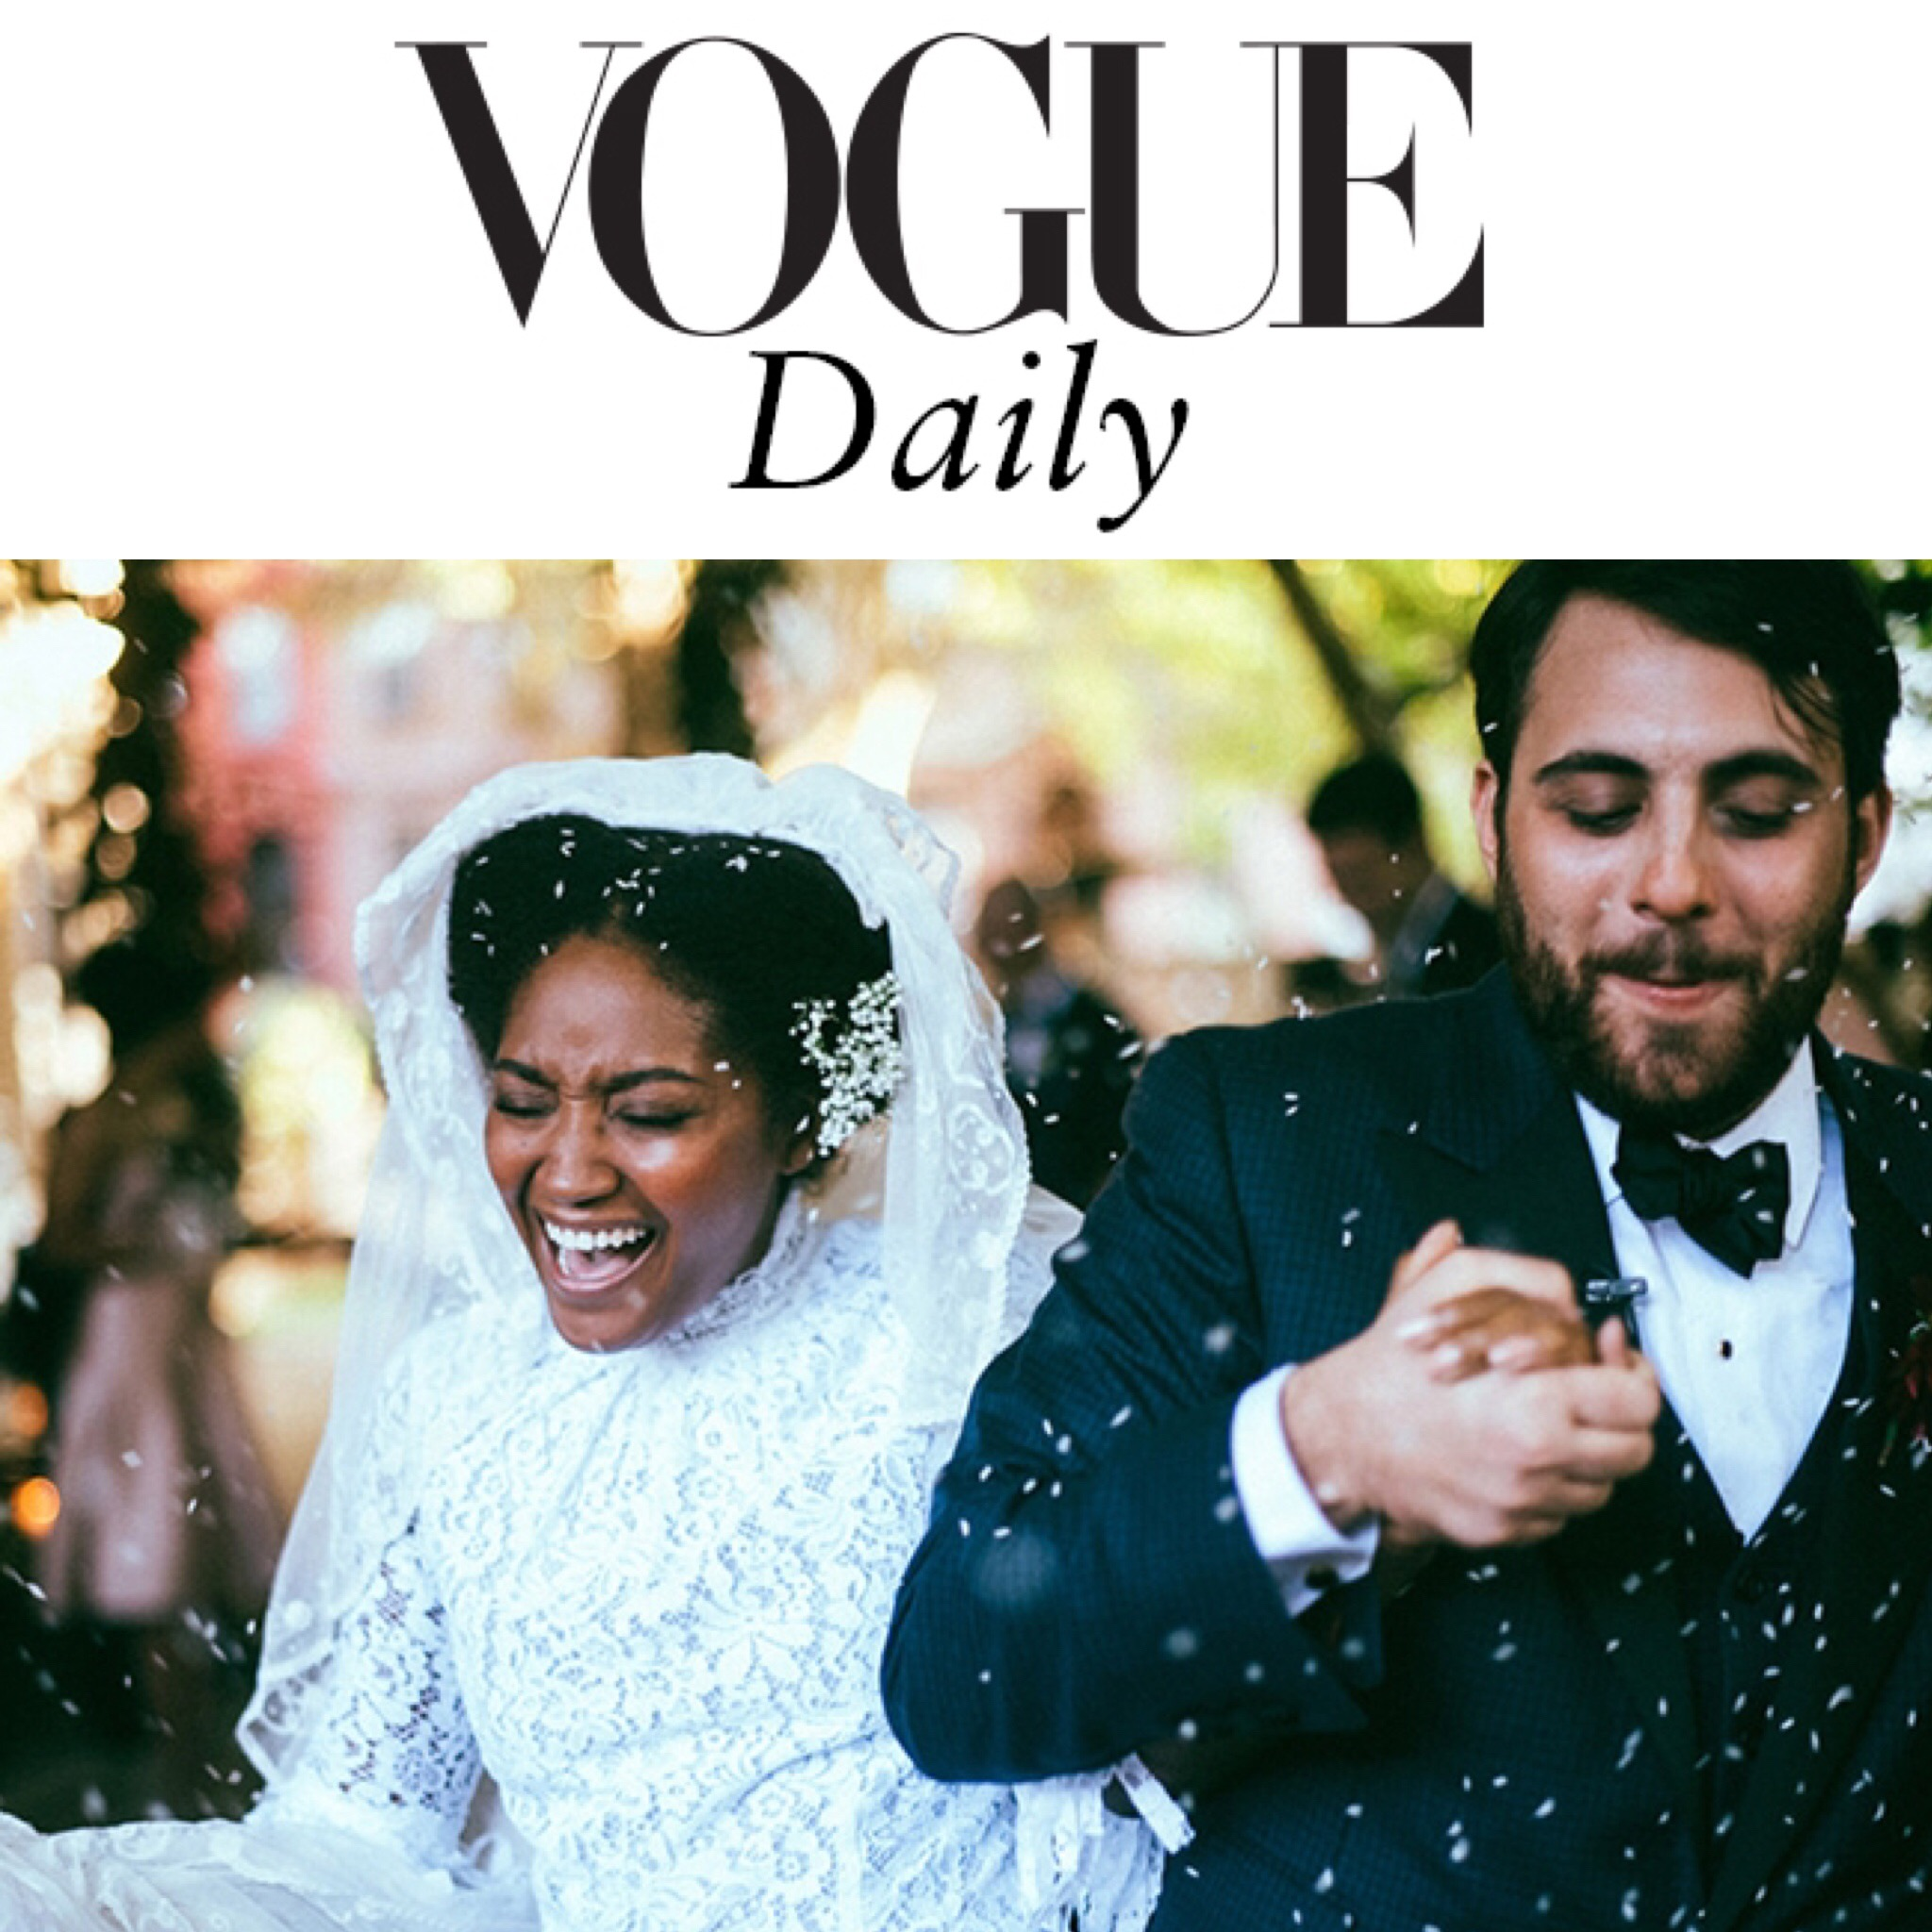 As featured in Vogue.com